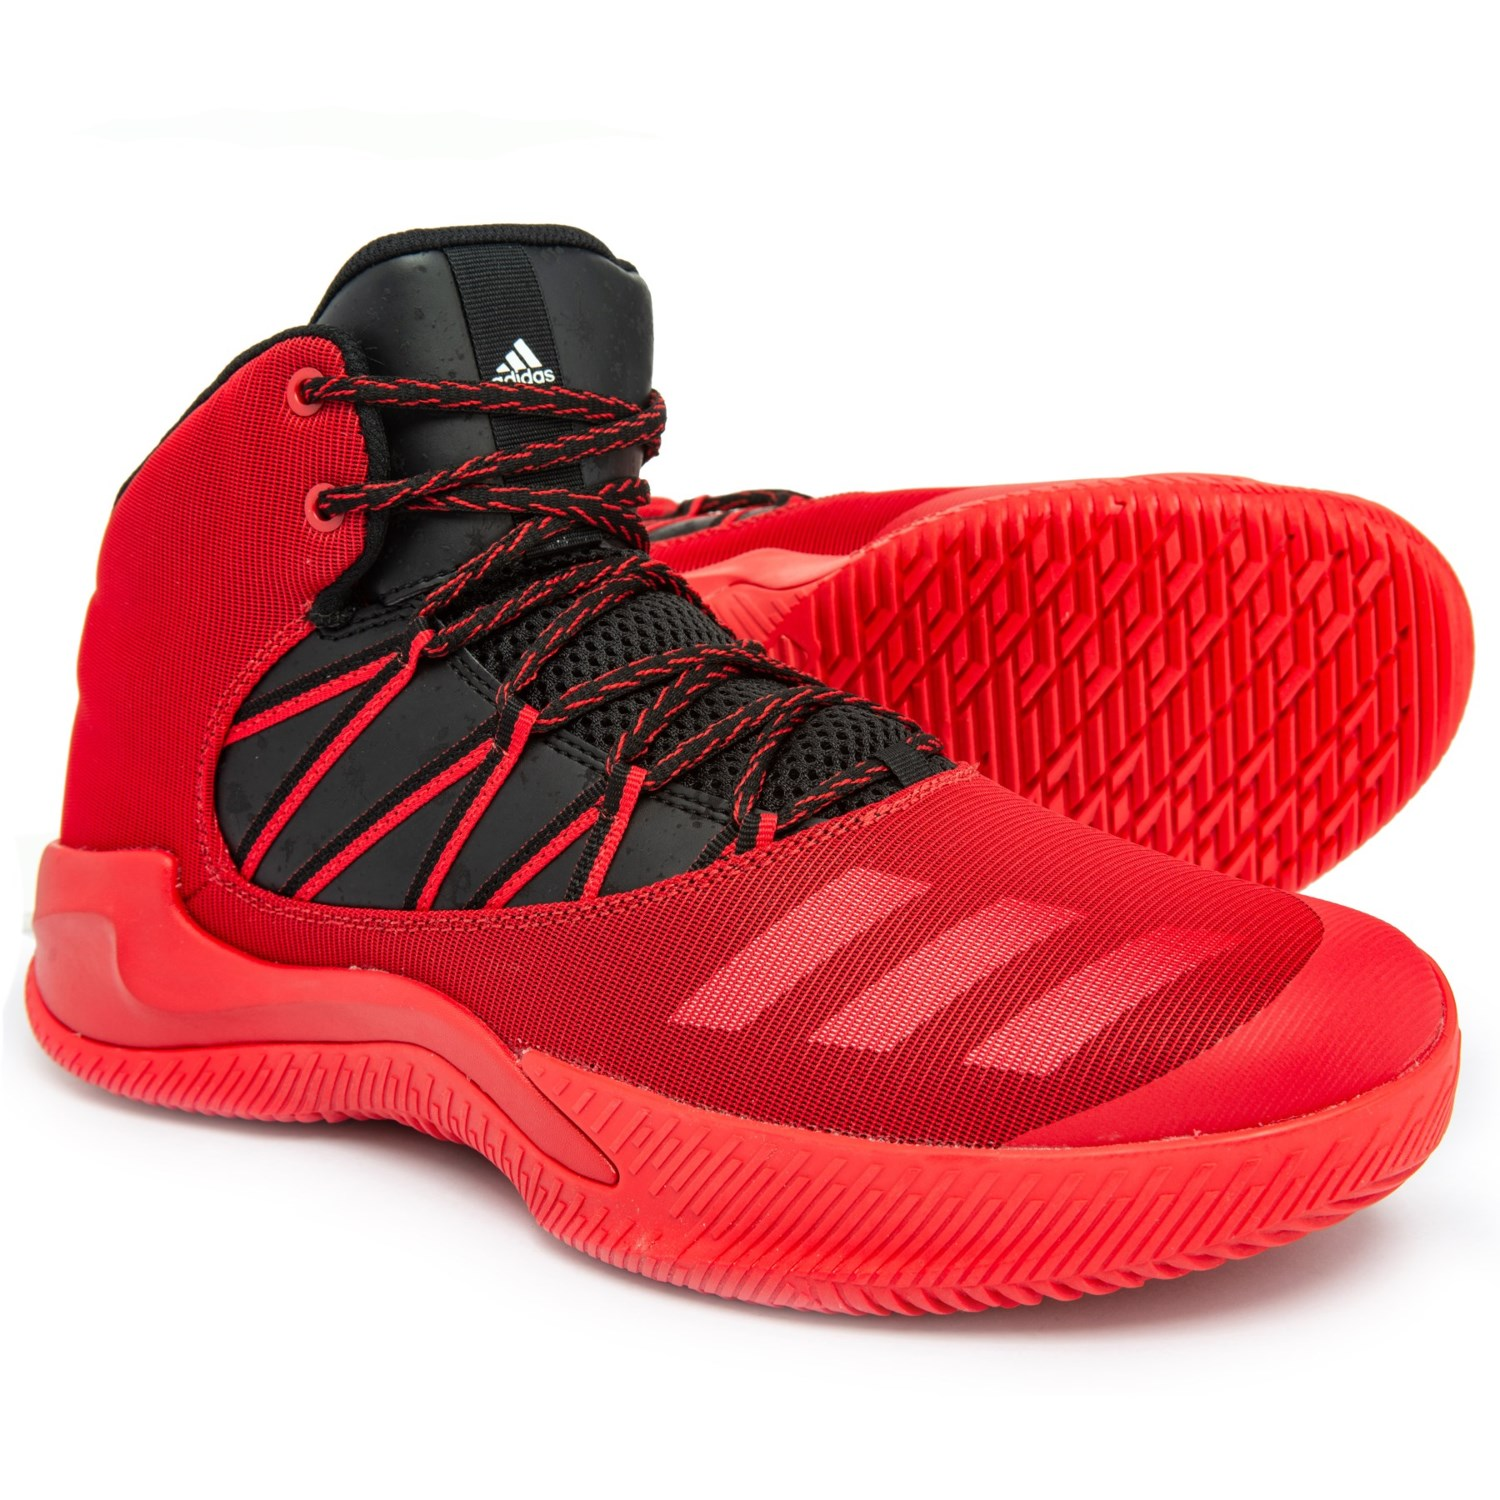 dff2f4154a2 adidas Infiltrate Basketball Shoes (For Men) in Scarlet Core Black Footwear  White